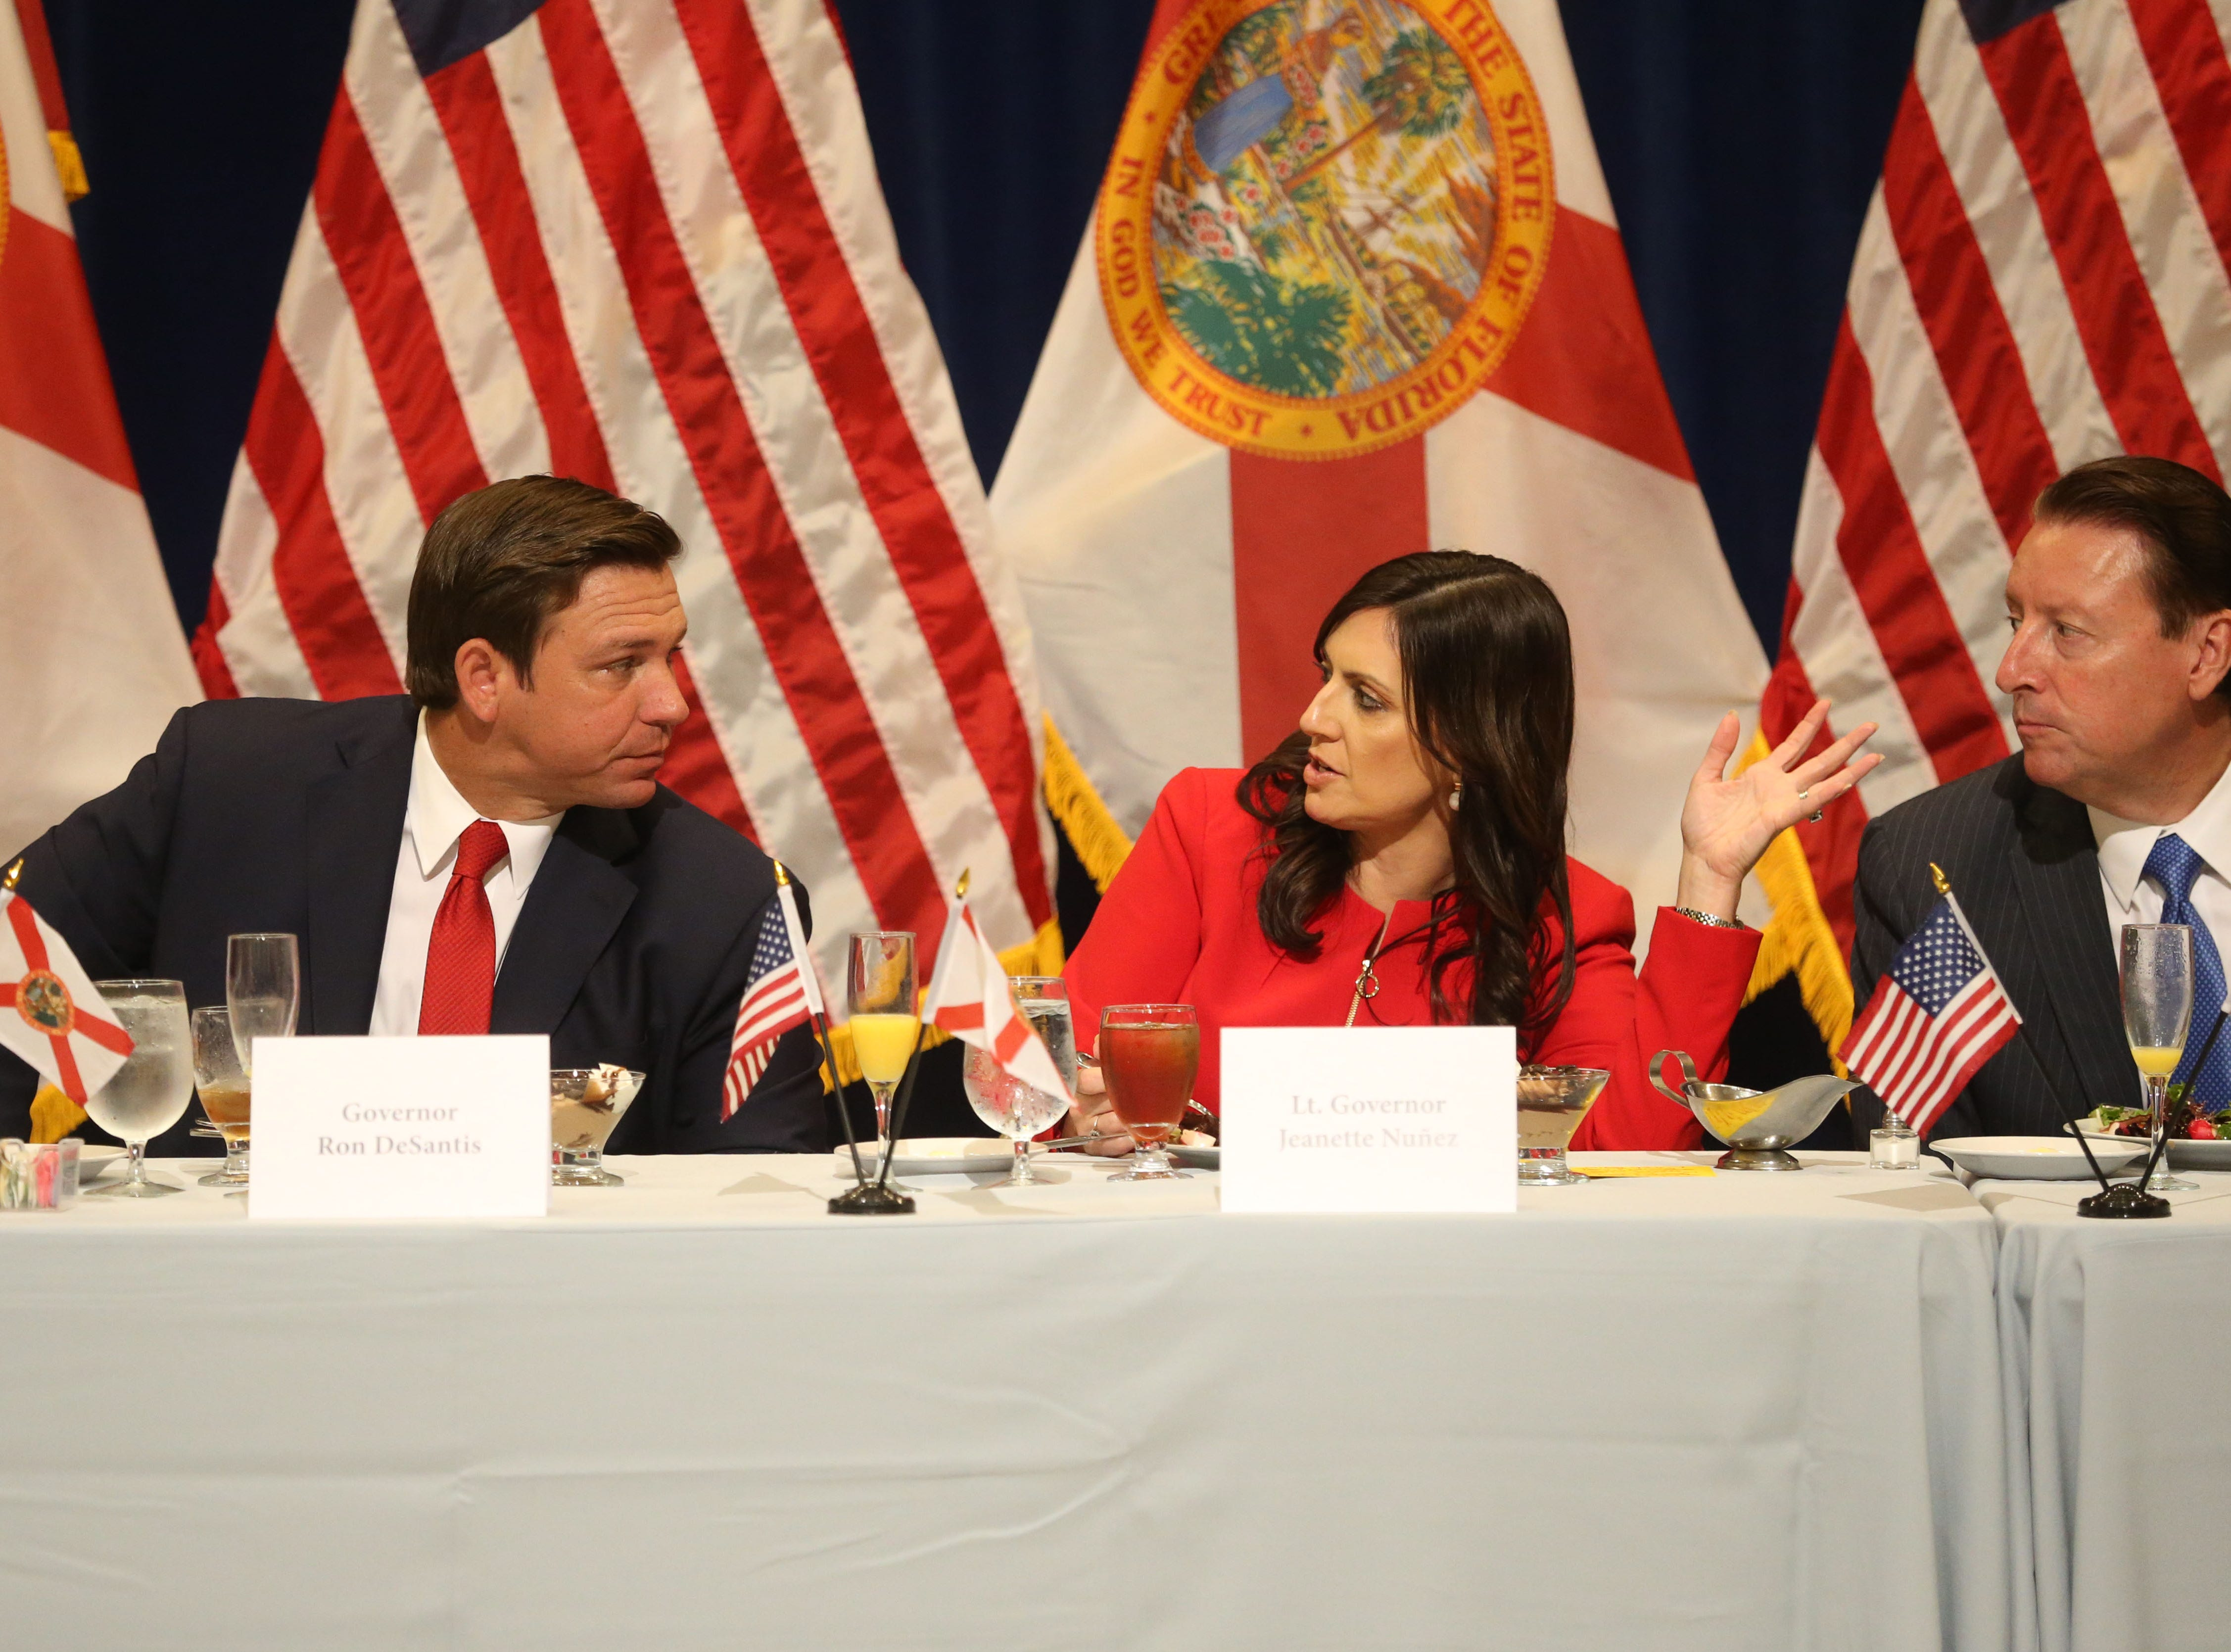 For the first time in Inaugural history, Gov. Ron DeSantis addresses FloridaÕs Legislative leaders and Cabinet officials. DeSantis discusses his plans to work with our stateÕs elected leaders to achieve a Bold Vision for a Brighter Future, Tuesday, Jan. 8, 2019. Gov. Ron DeSantis, left, Lt. Gov. Jeanette Nunez, and Senate President Bill Galvano converse during the luncheon.